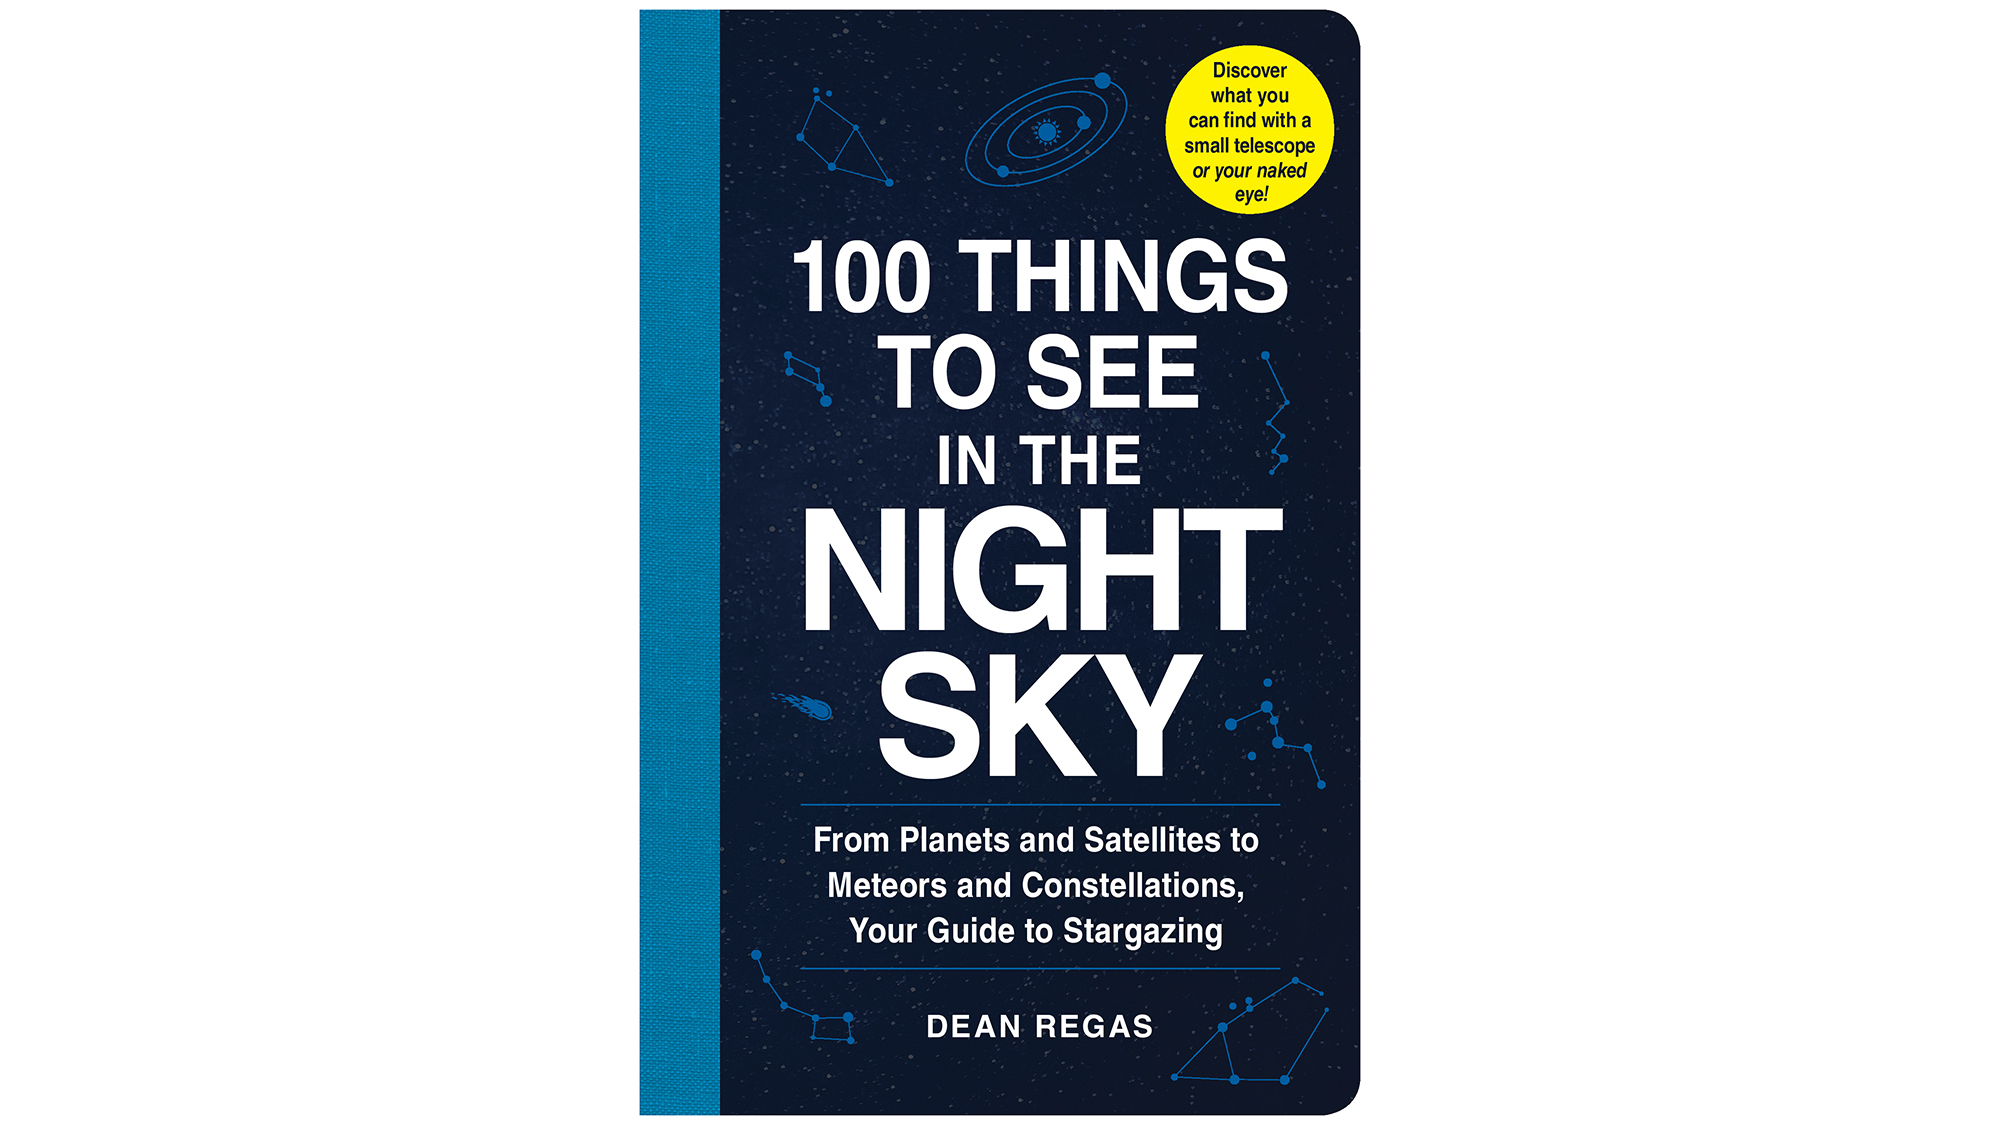 100 Things to See in the Night Sky': A Stargazing Guide for